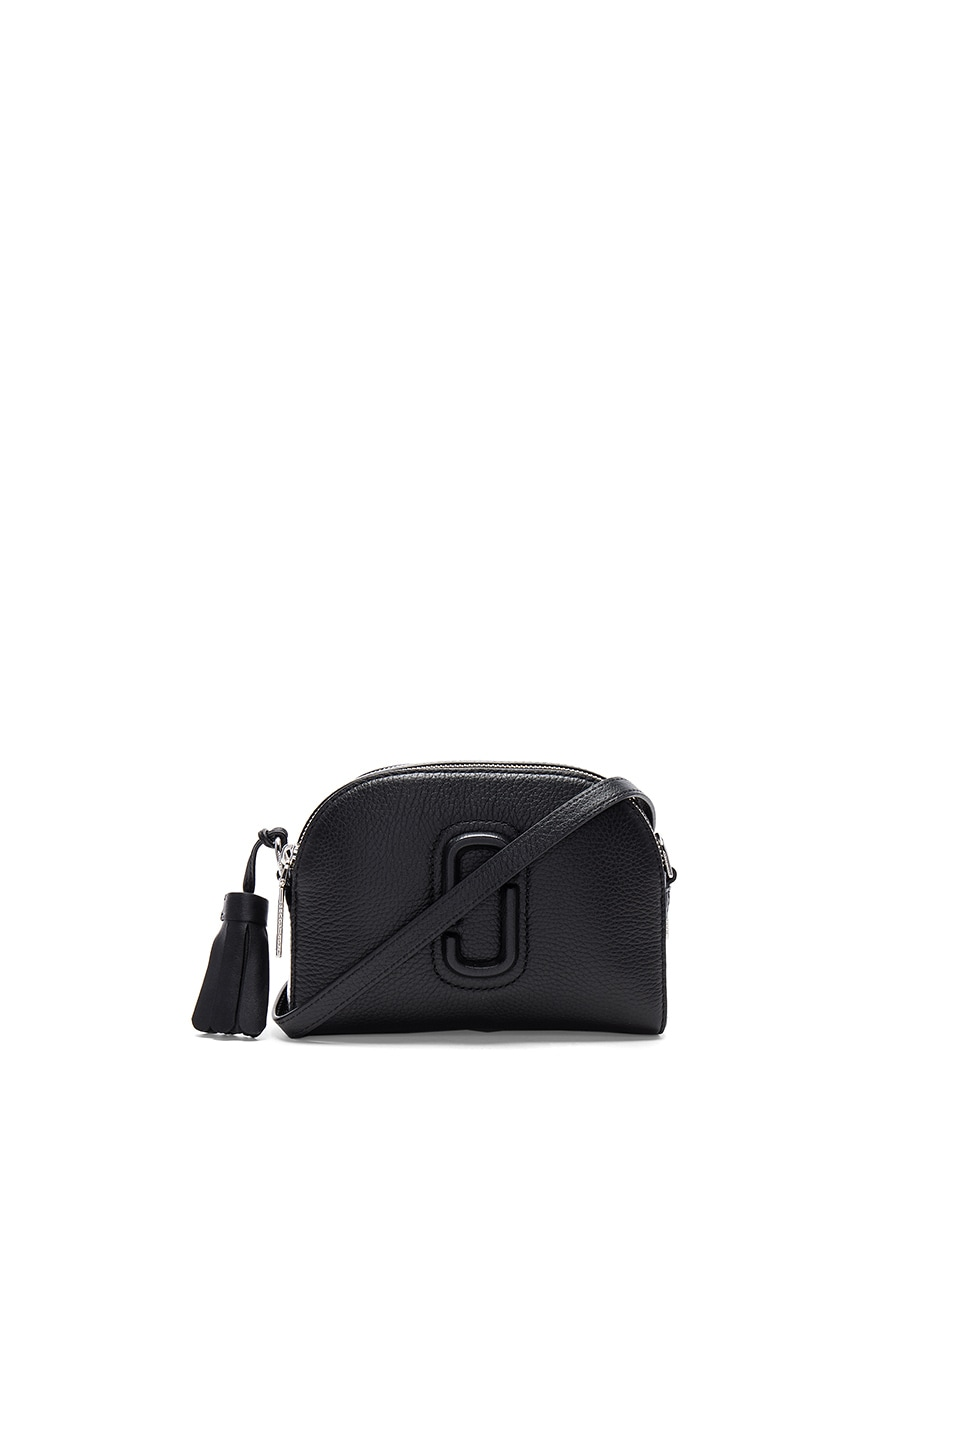 Marc Jacobs Shutter Small Camera Bag in Black